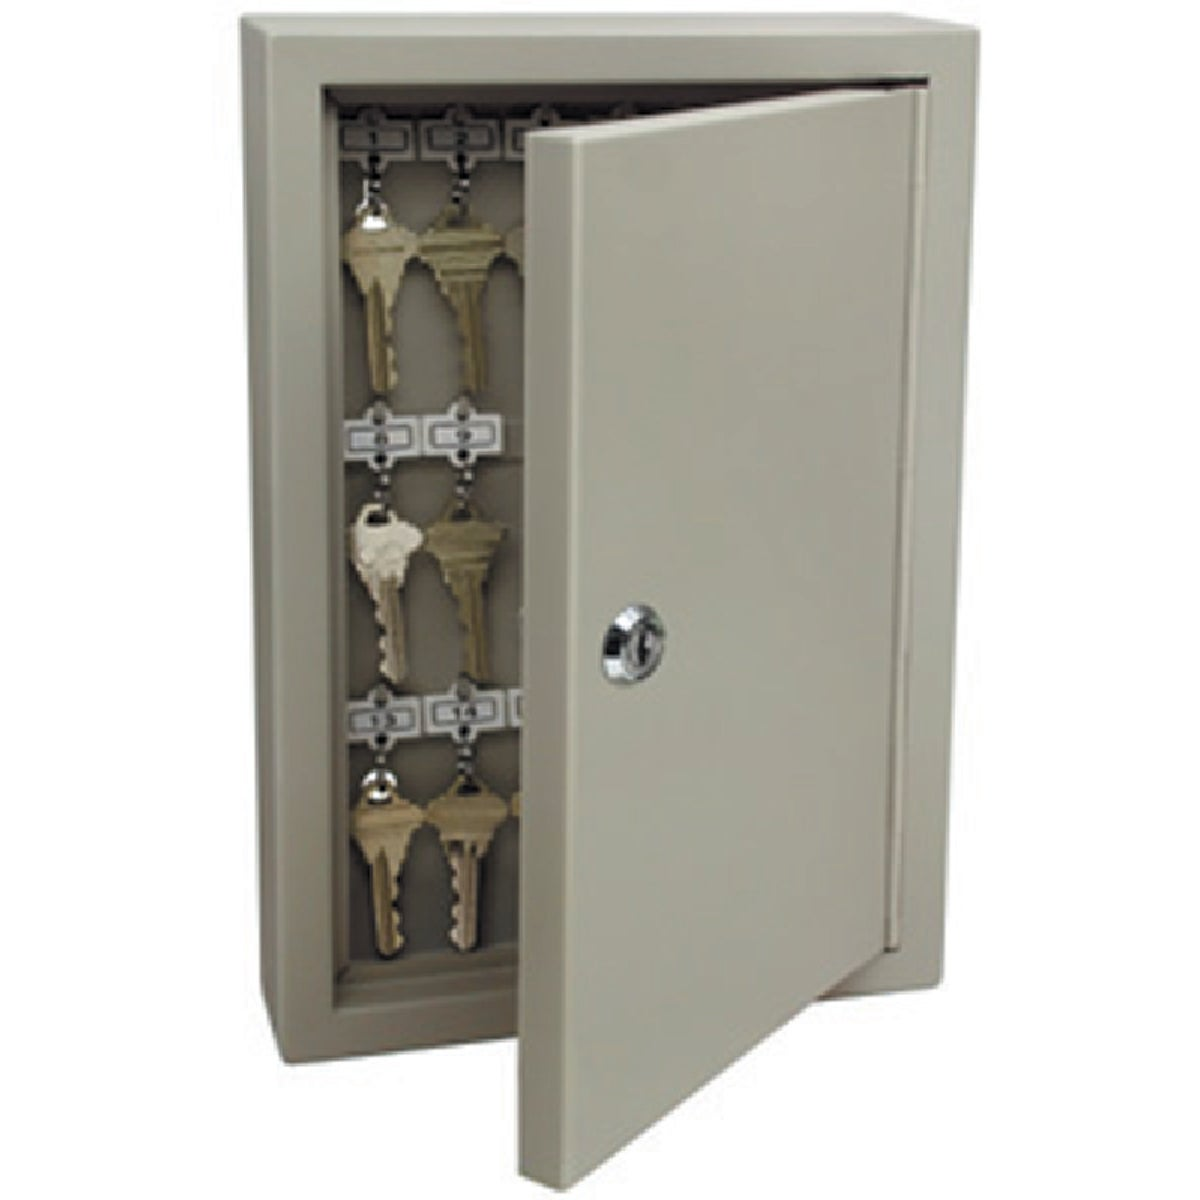 STEEL KEY CABINET - 001801 by Supra Products Inc